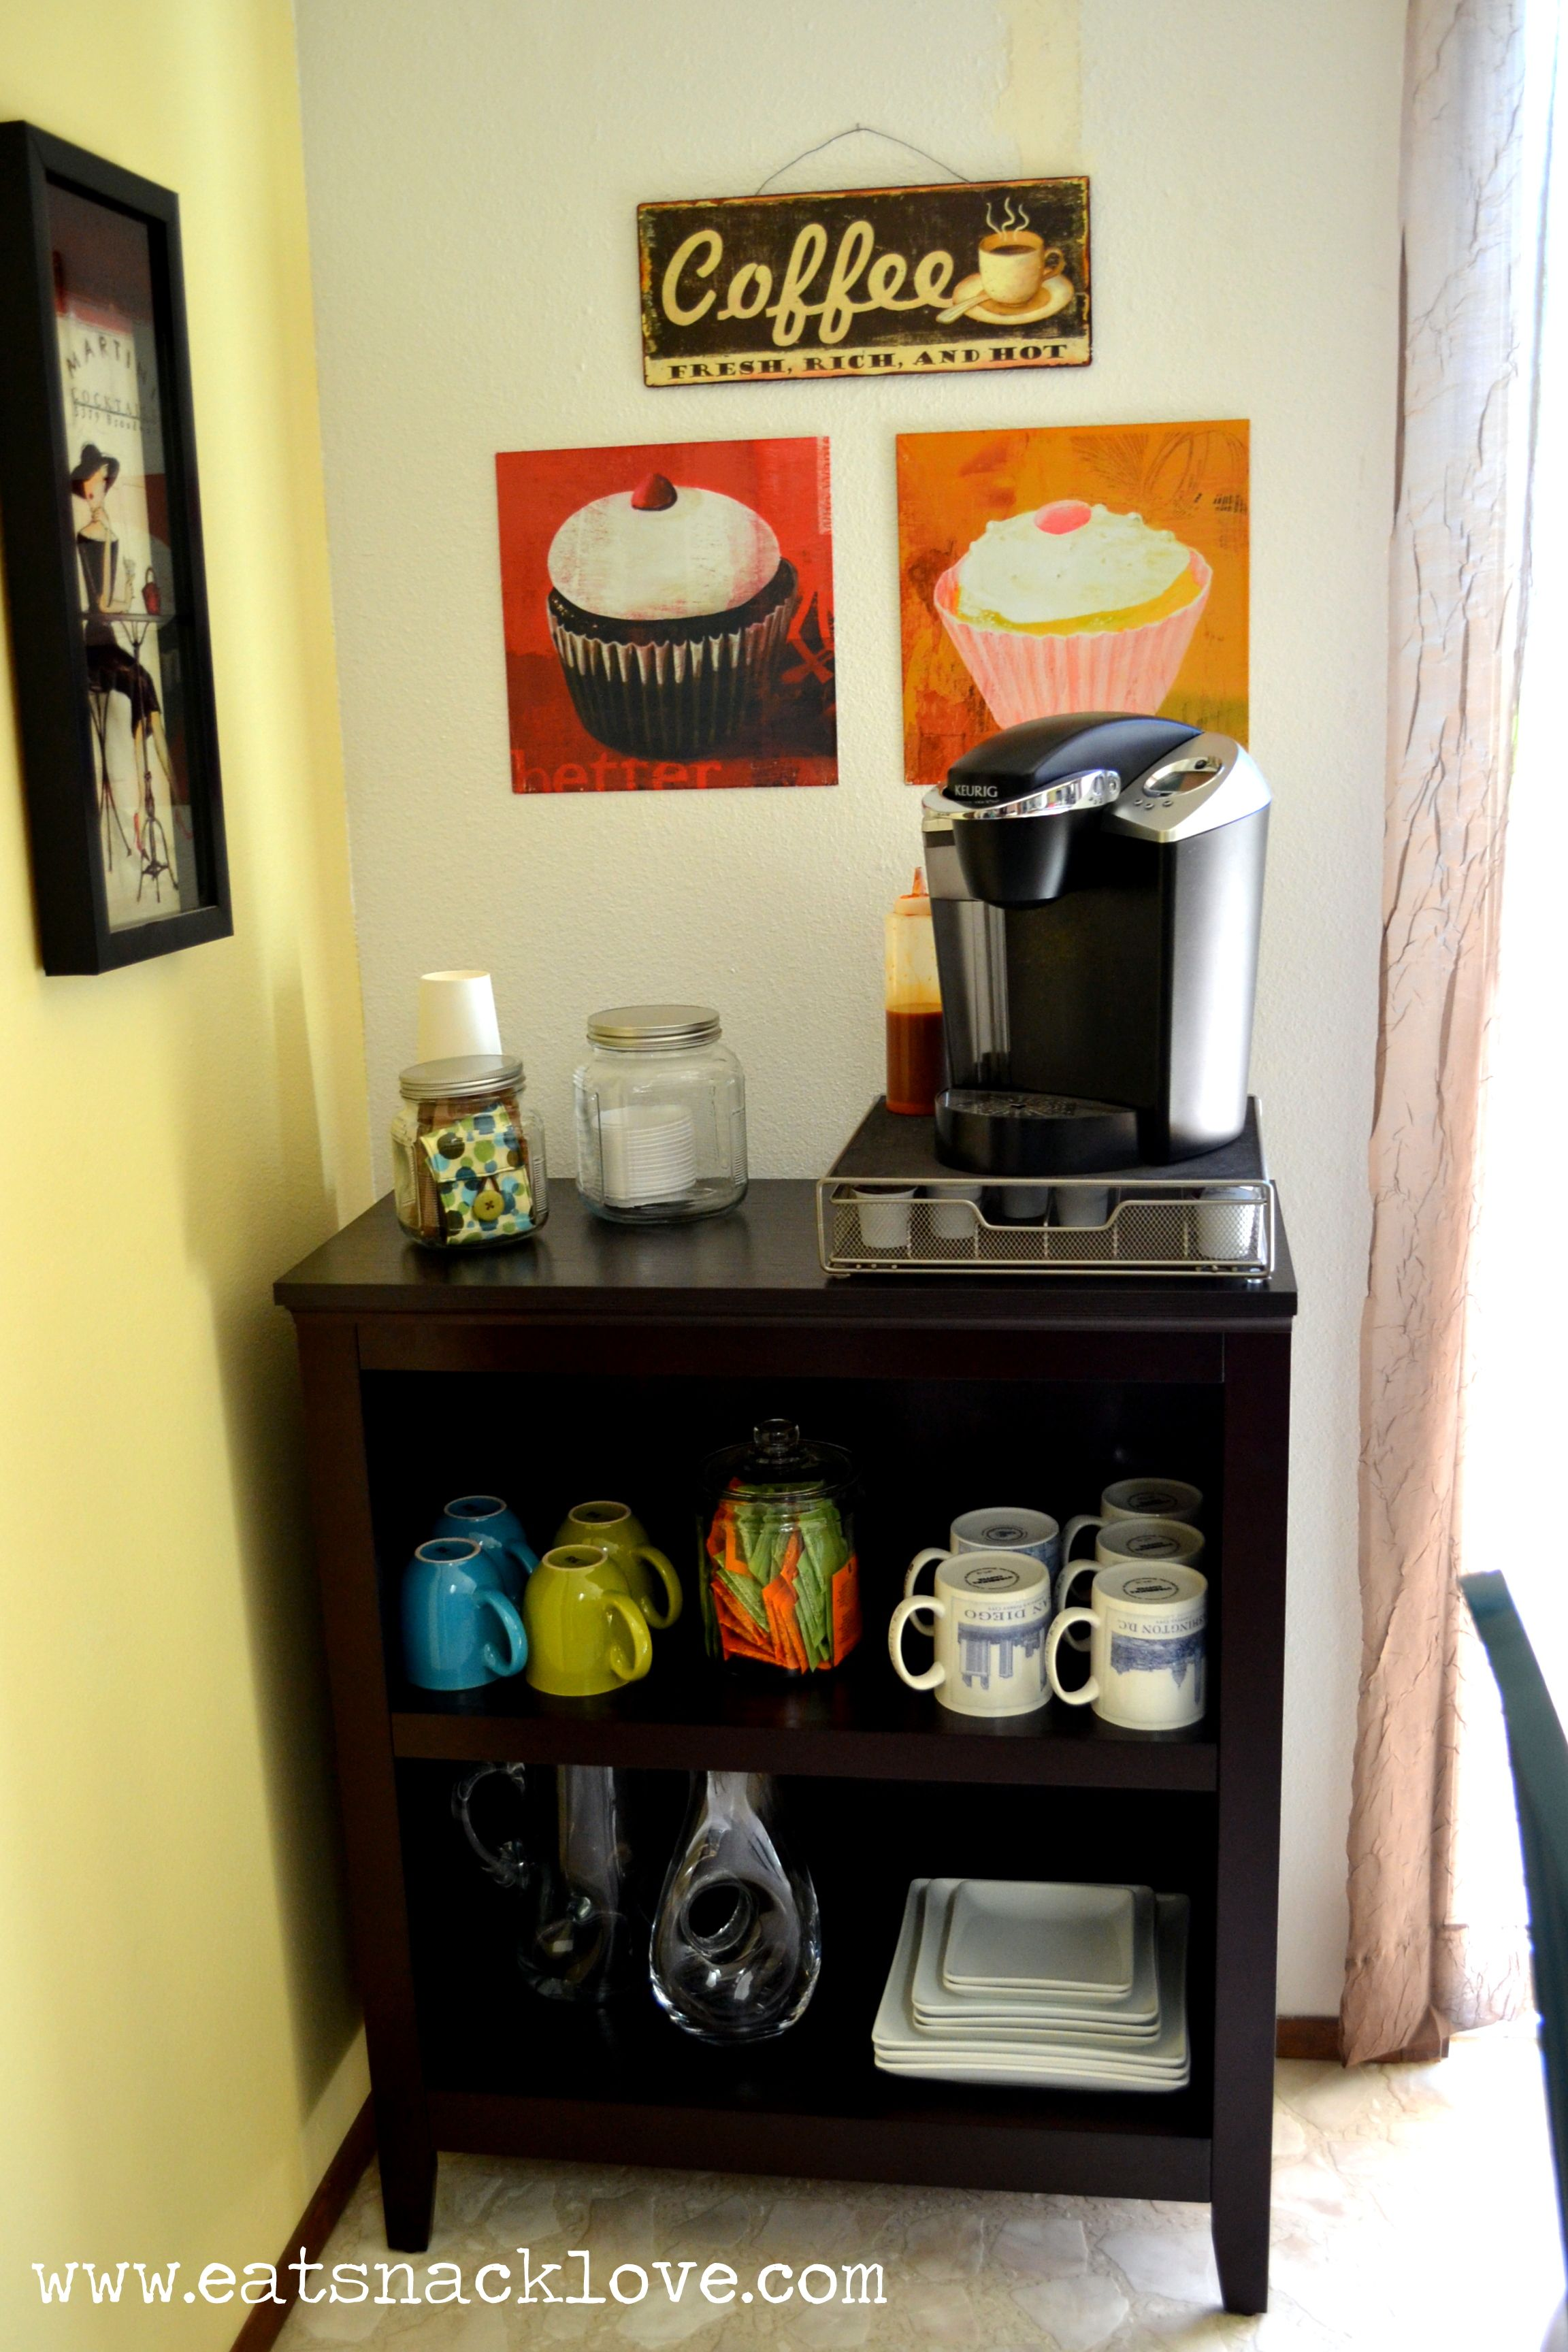 Cute kitchen coffee bar ideas top creative coffee for Coffee station ideas for the home